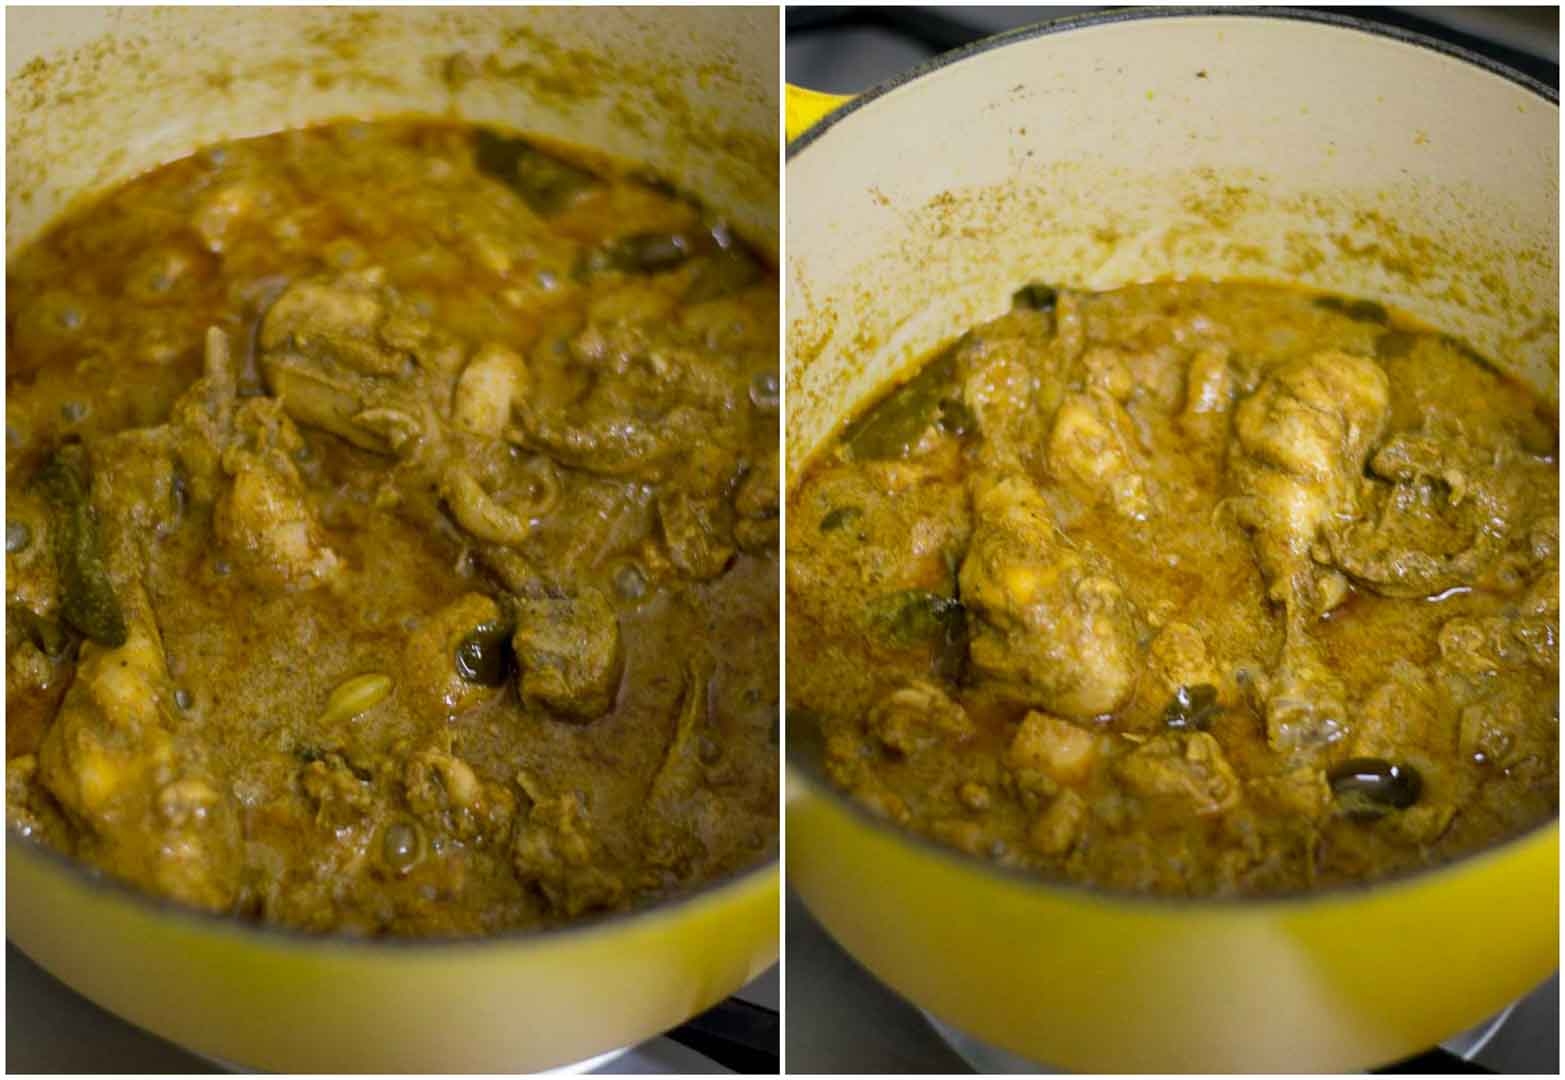 Srilankan-chicken-curry-with-homemade-curry-powder-recipe-11